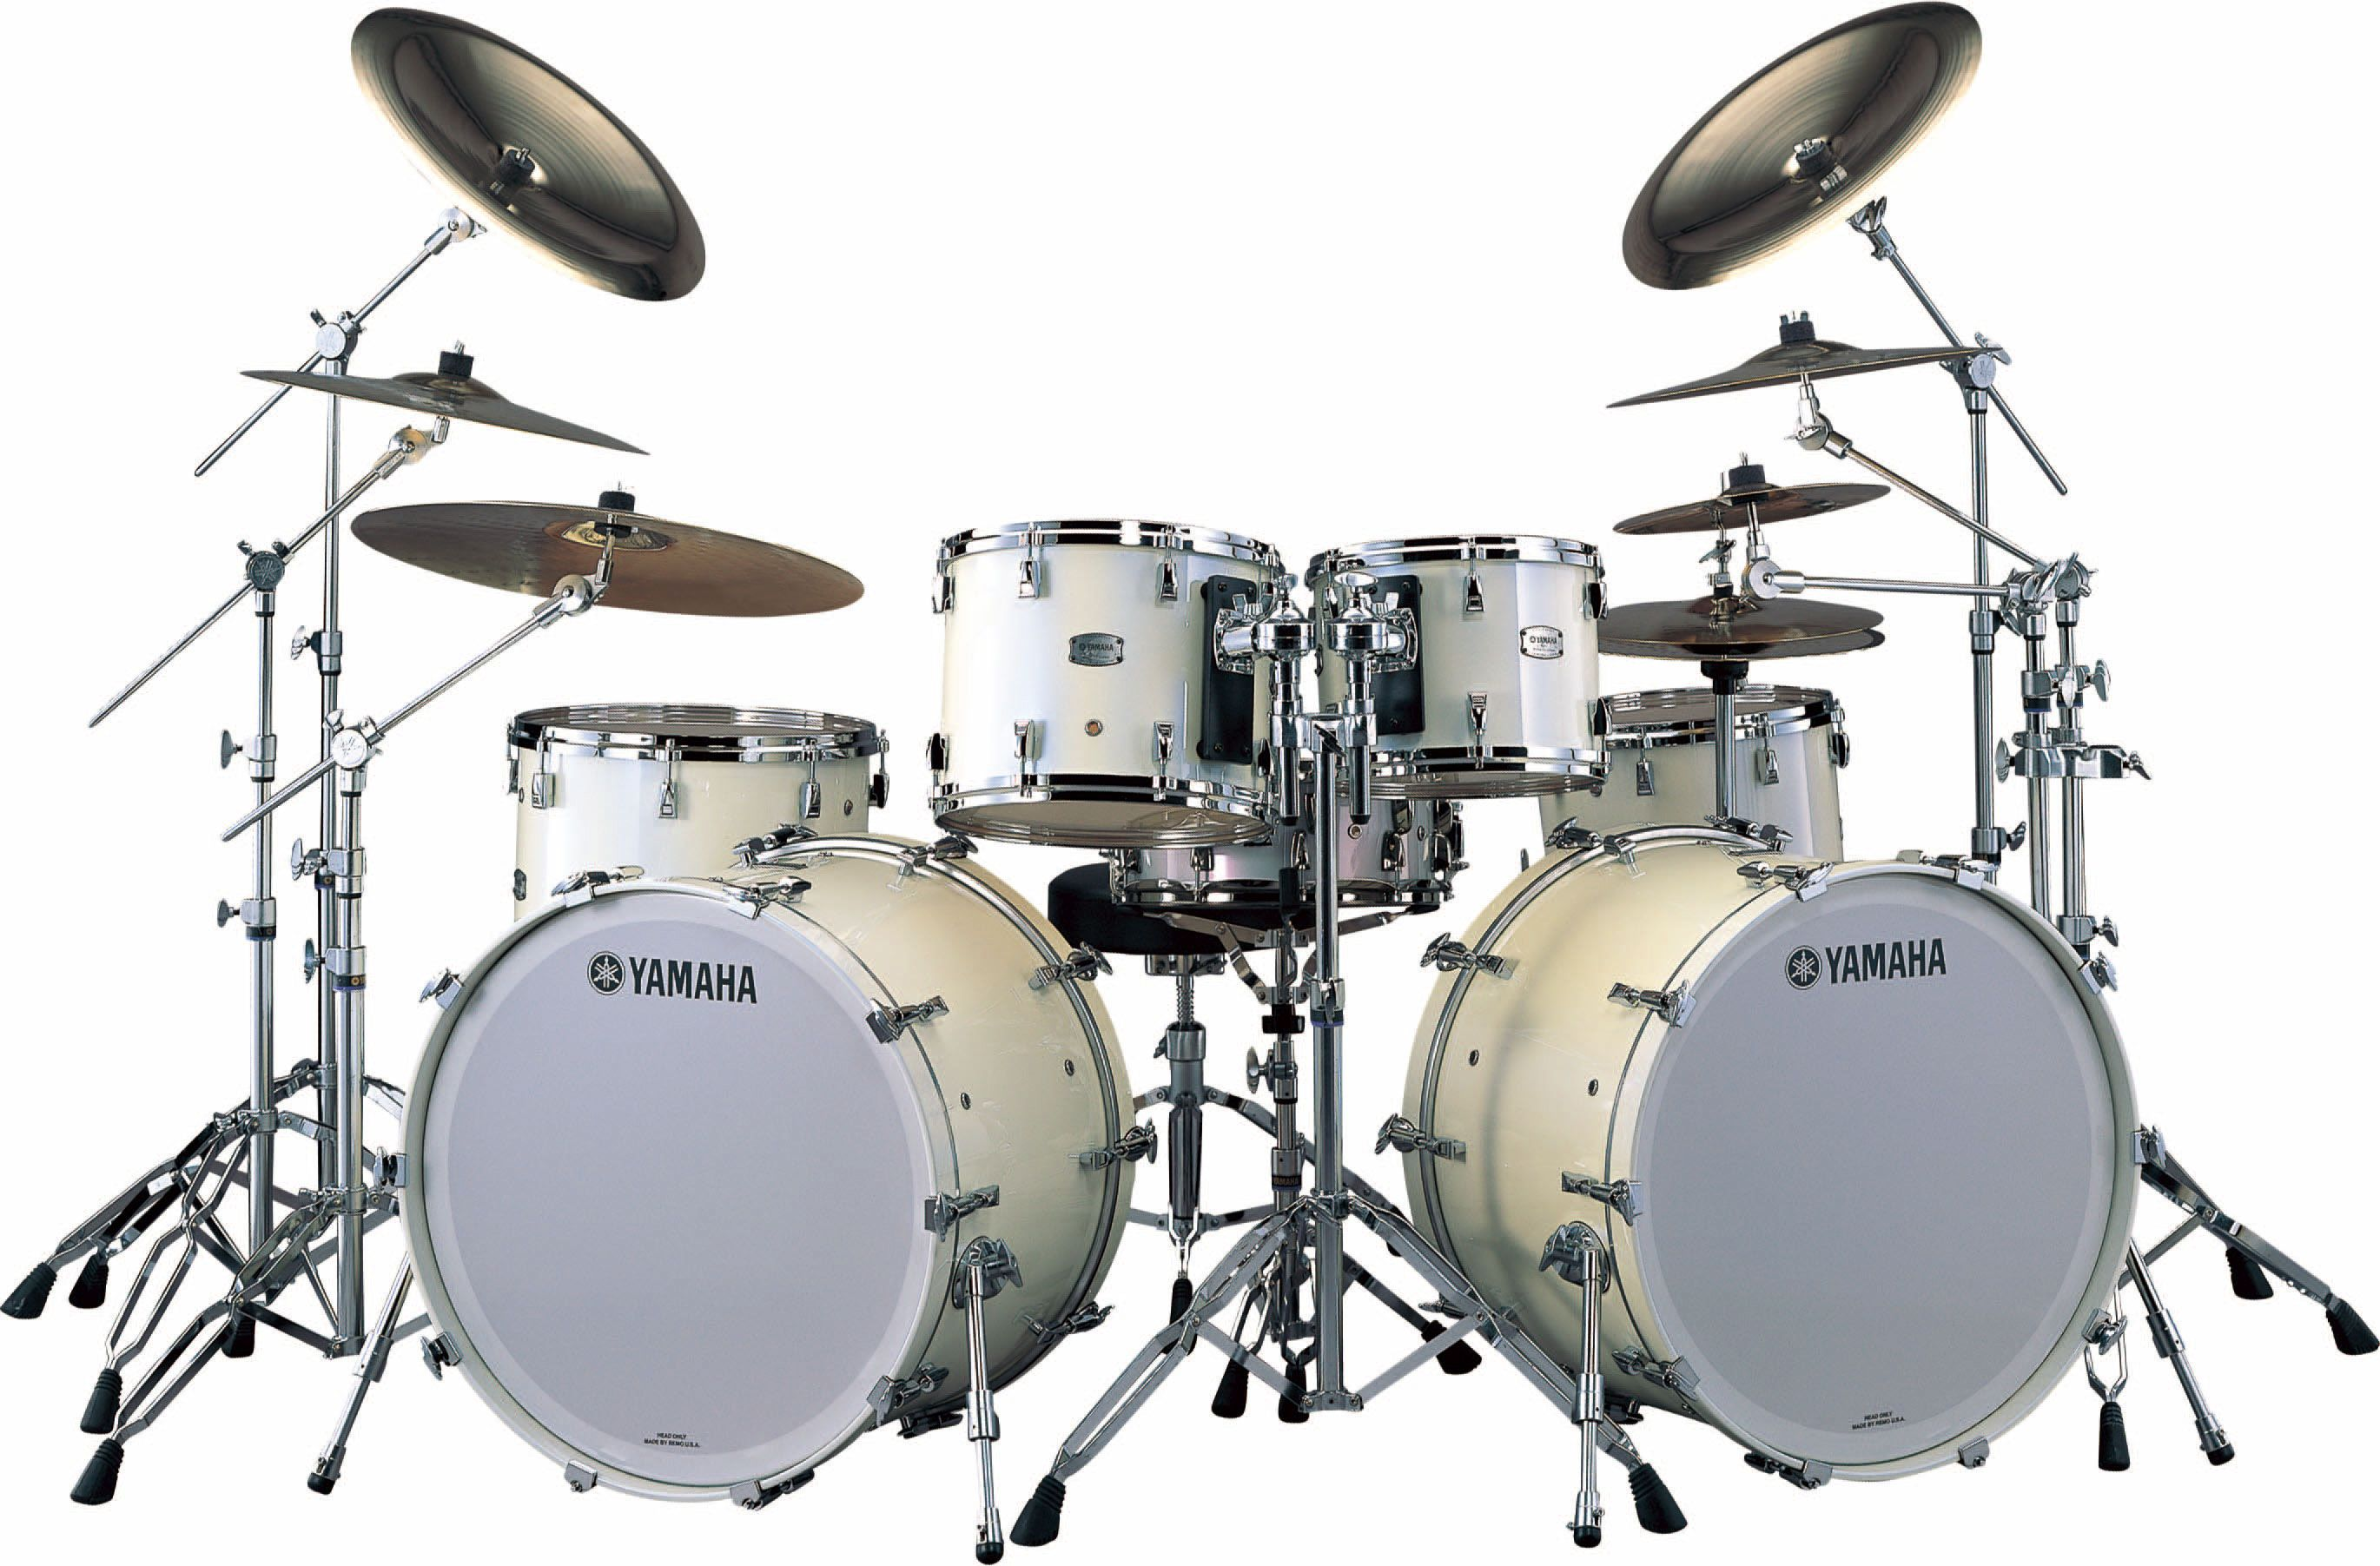 phx acoustic drum sets drums musical instruments products yamaha united states drums. Black Bedroom Furniture Sets. Home Design Ideas